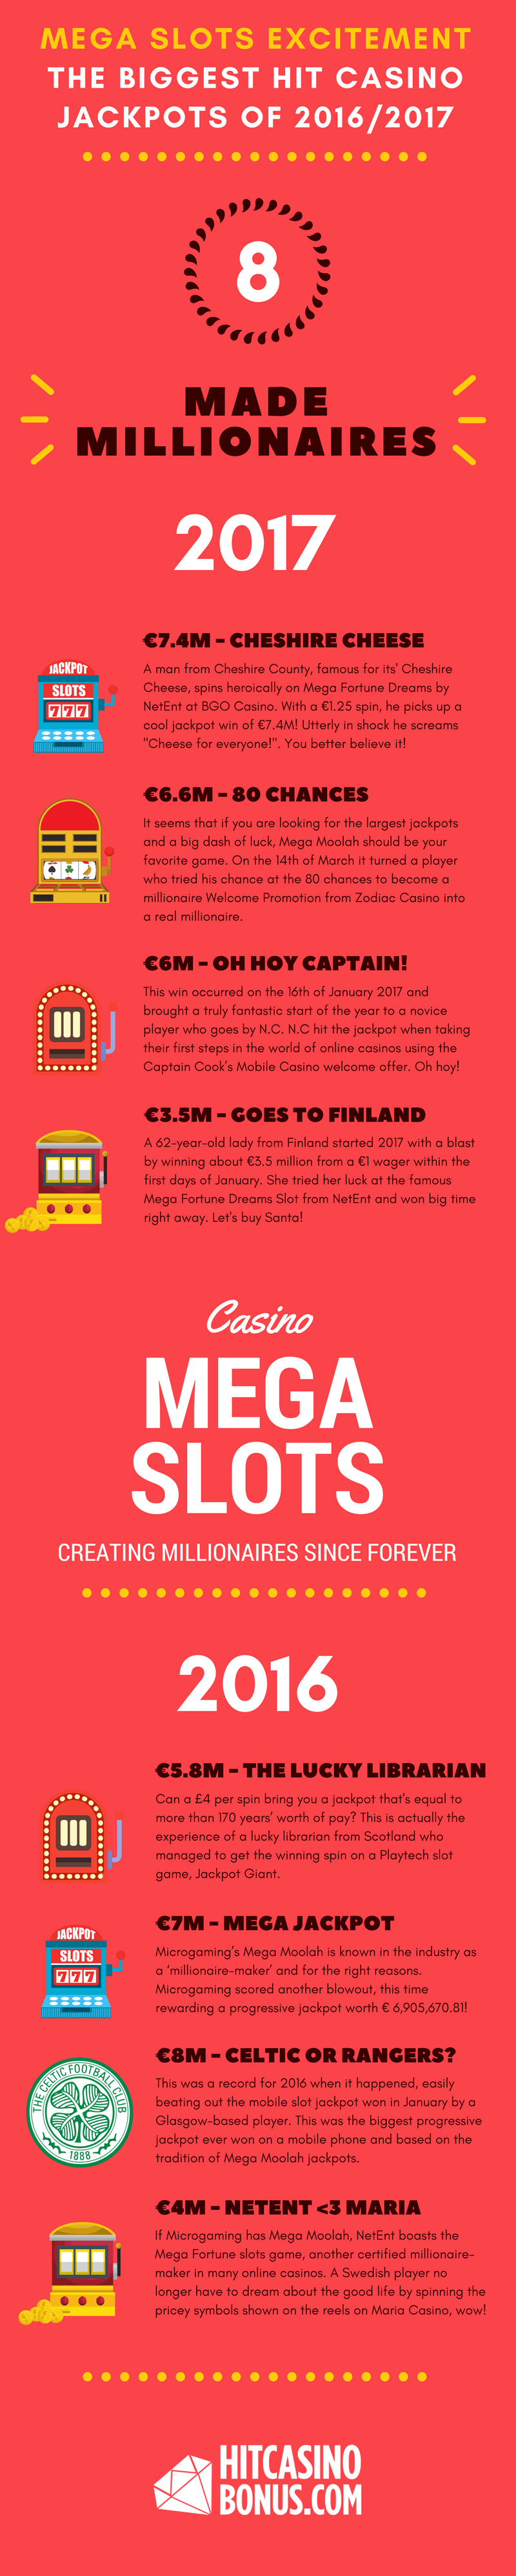 Infographic-Mega-Slots-Excitement-The-8-Biggest-Hit-Casino-Jackpots-of-2016-and-2017